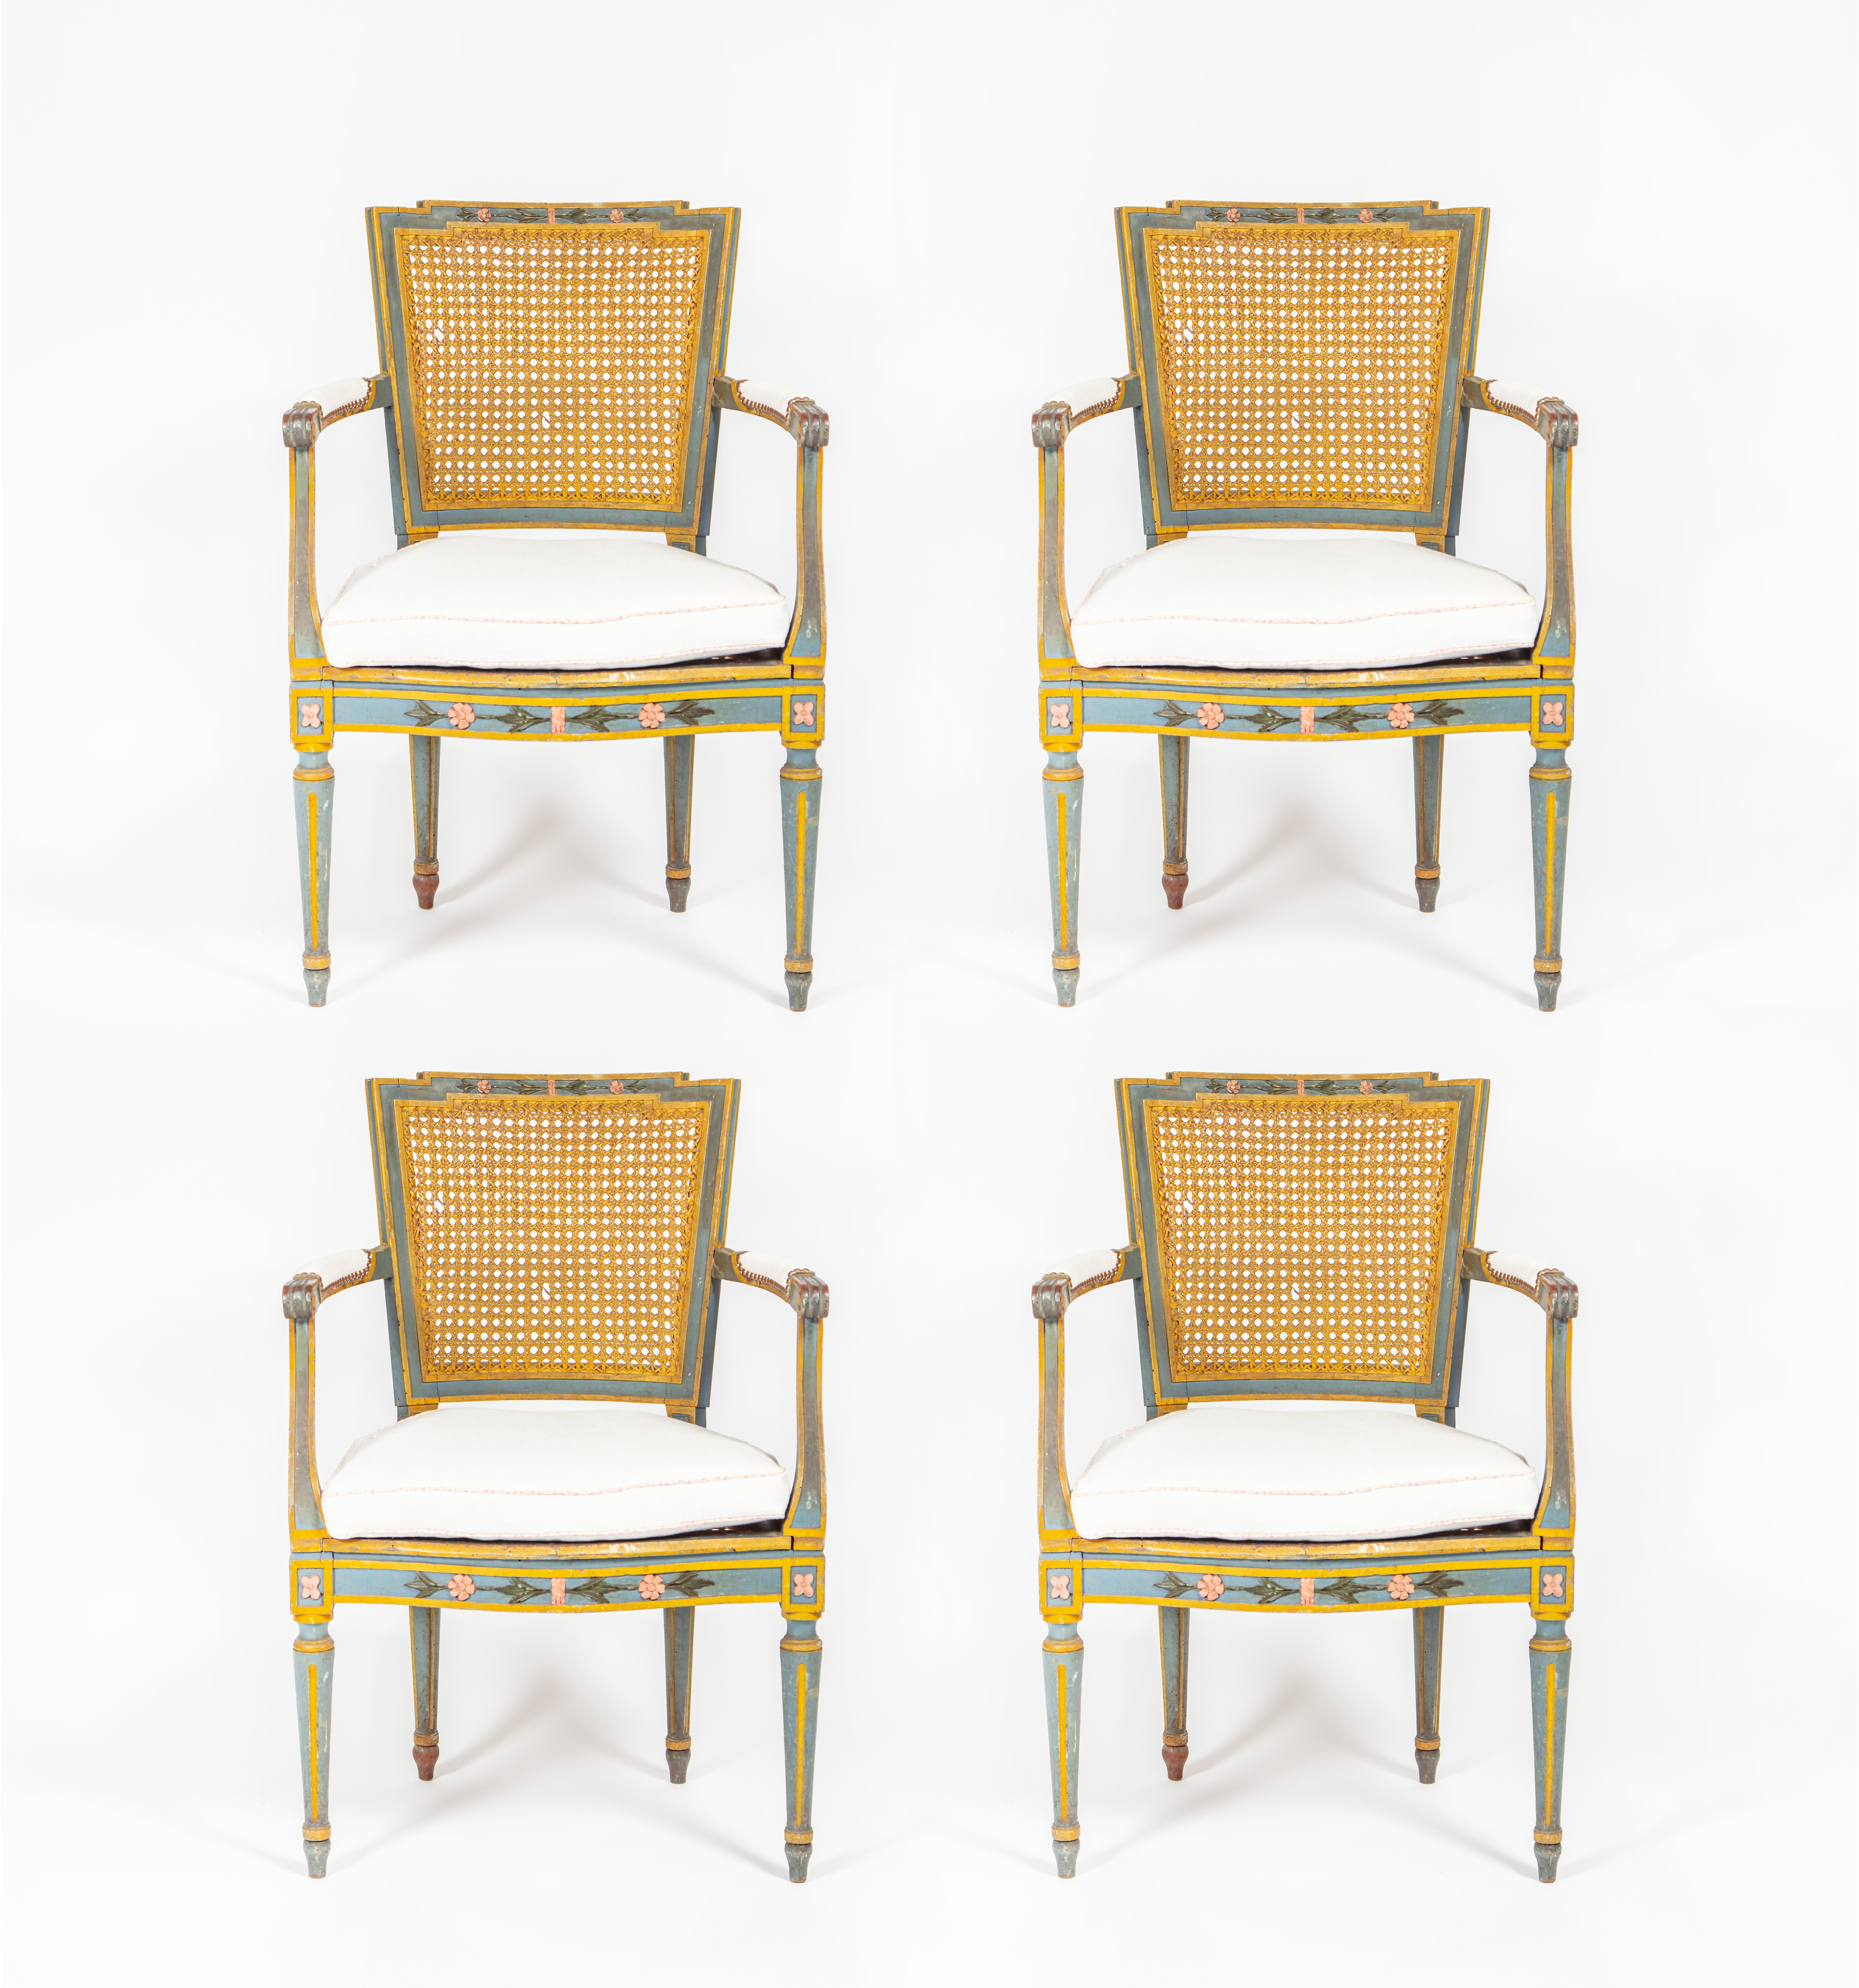 A set of four French painted salon chairs with caned backs and seats, Circa 1780